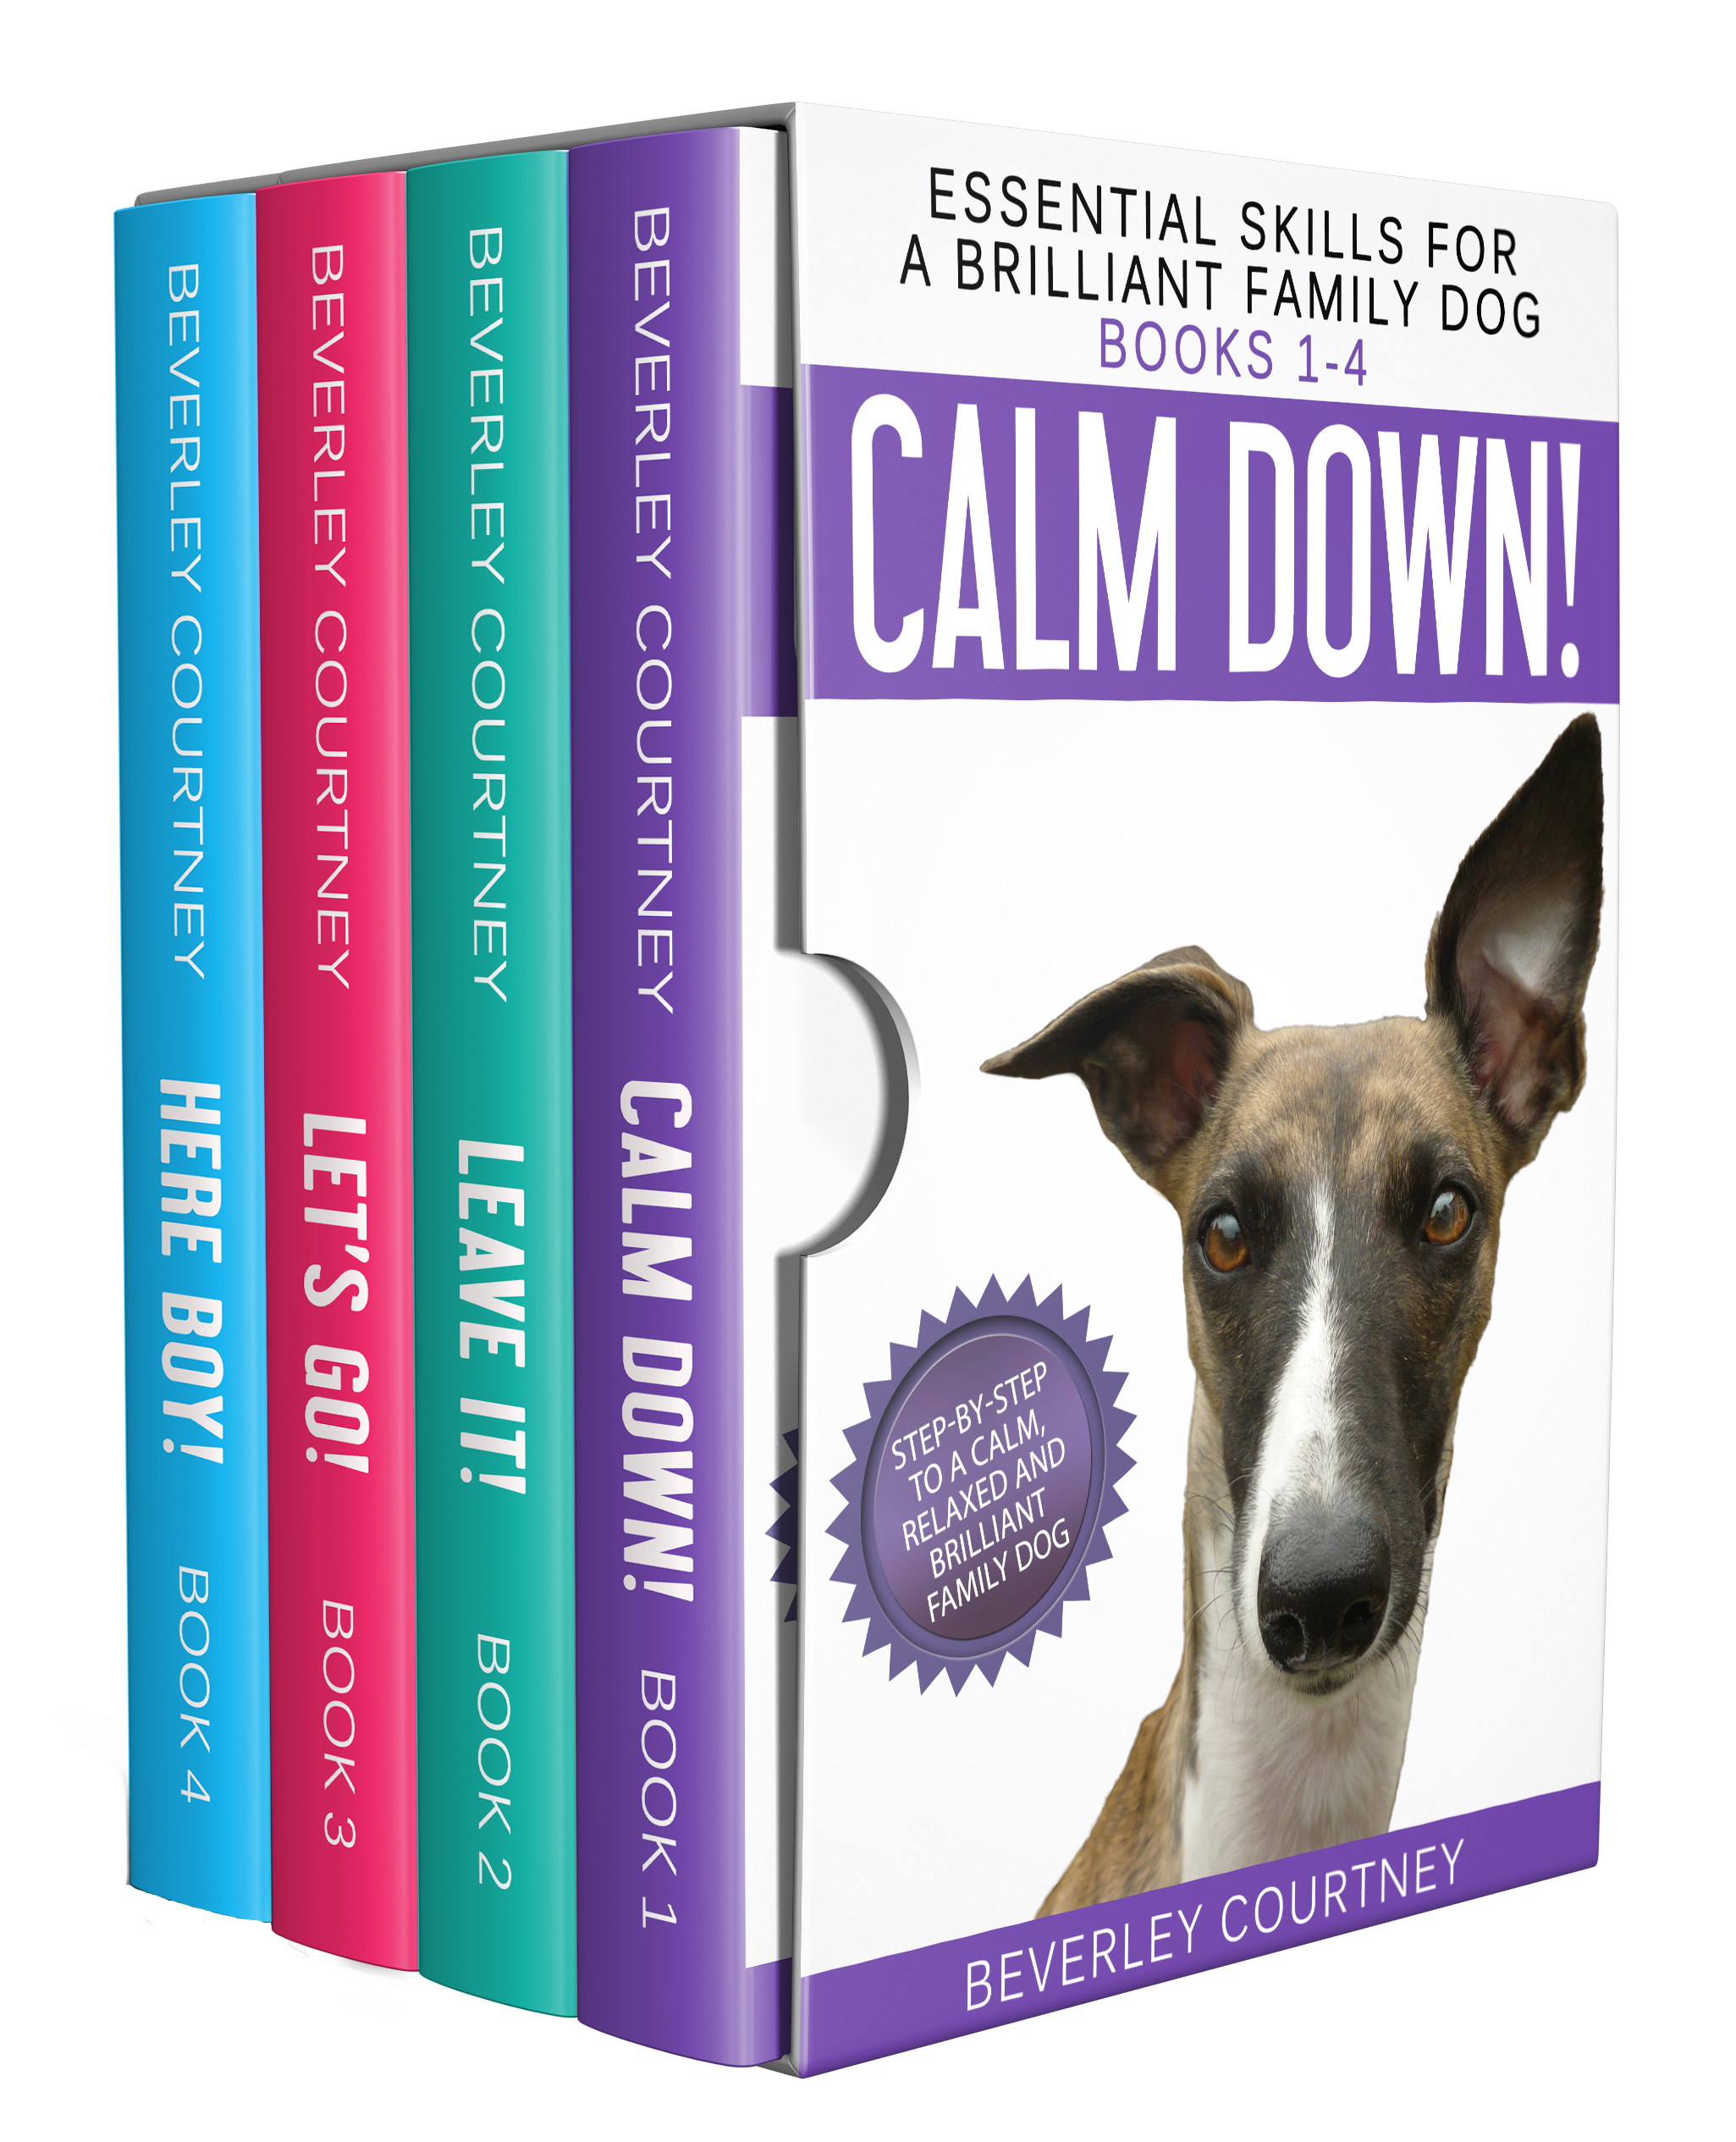 Dog training, puppy training | Boxset of Essential Skills for a Brilliant Family Dog, books 1-4  | CLICK FOR DETAILS | www.brilliantfamilydog.com